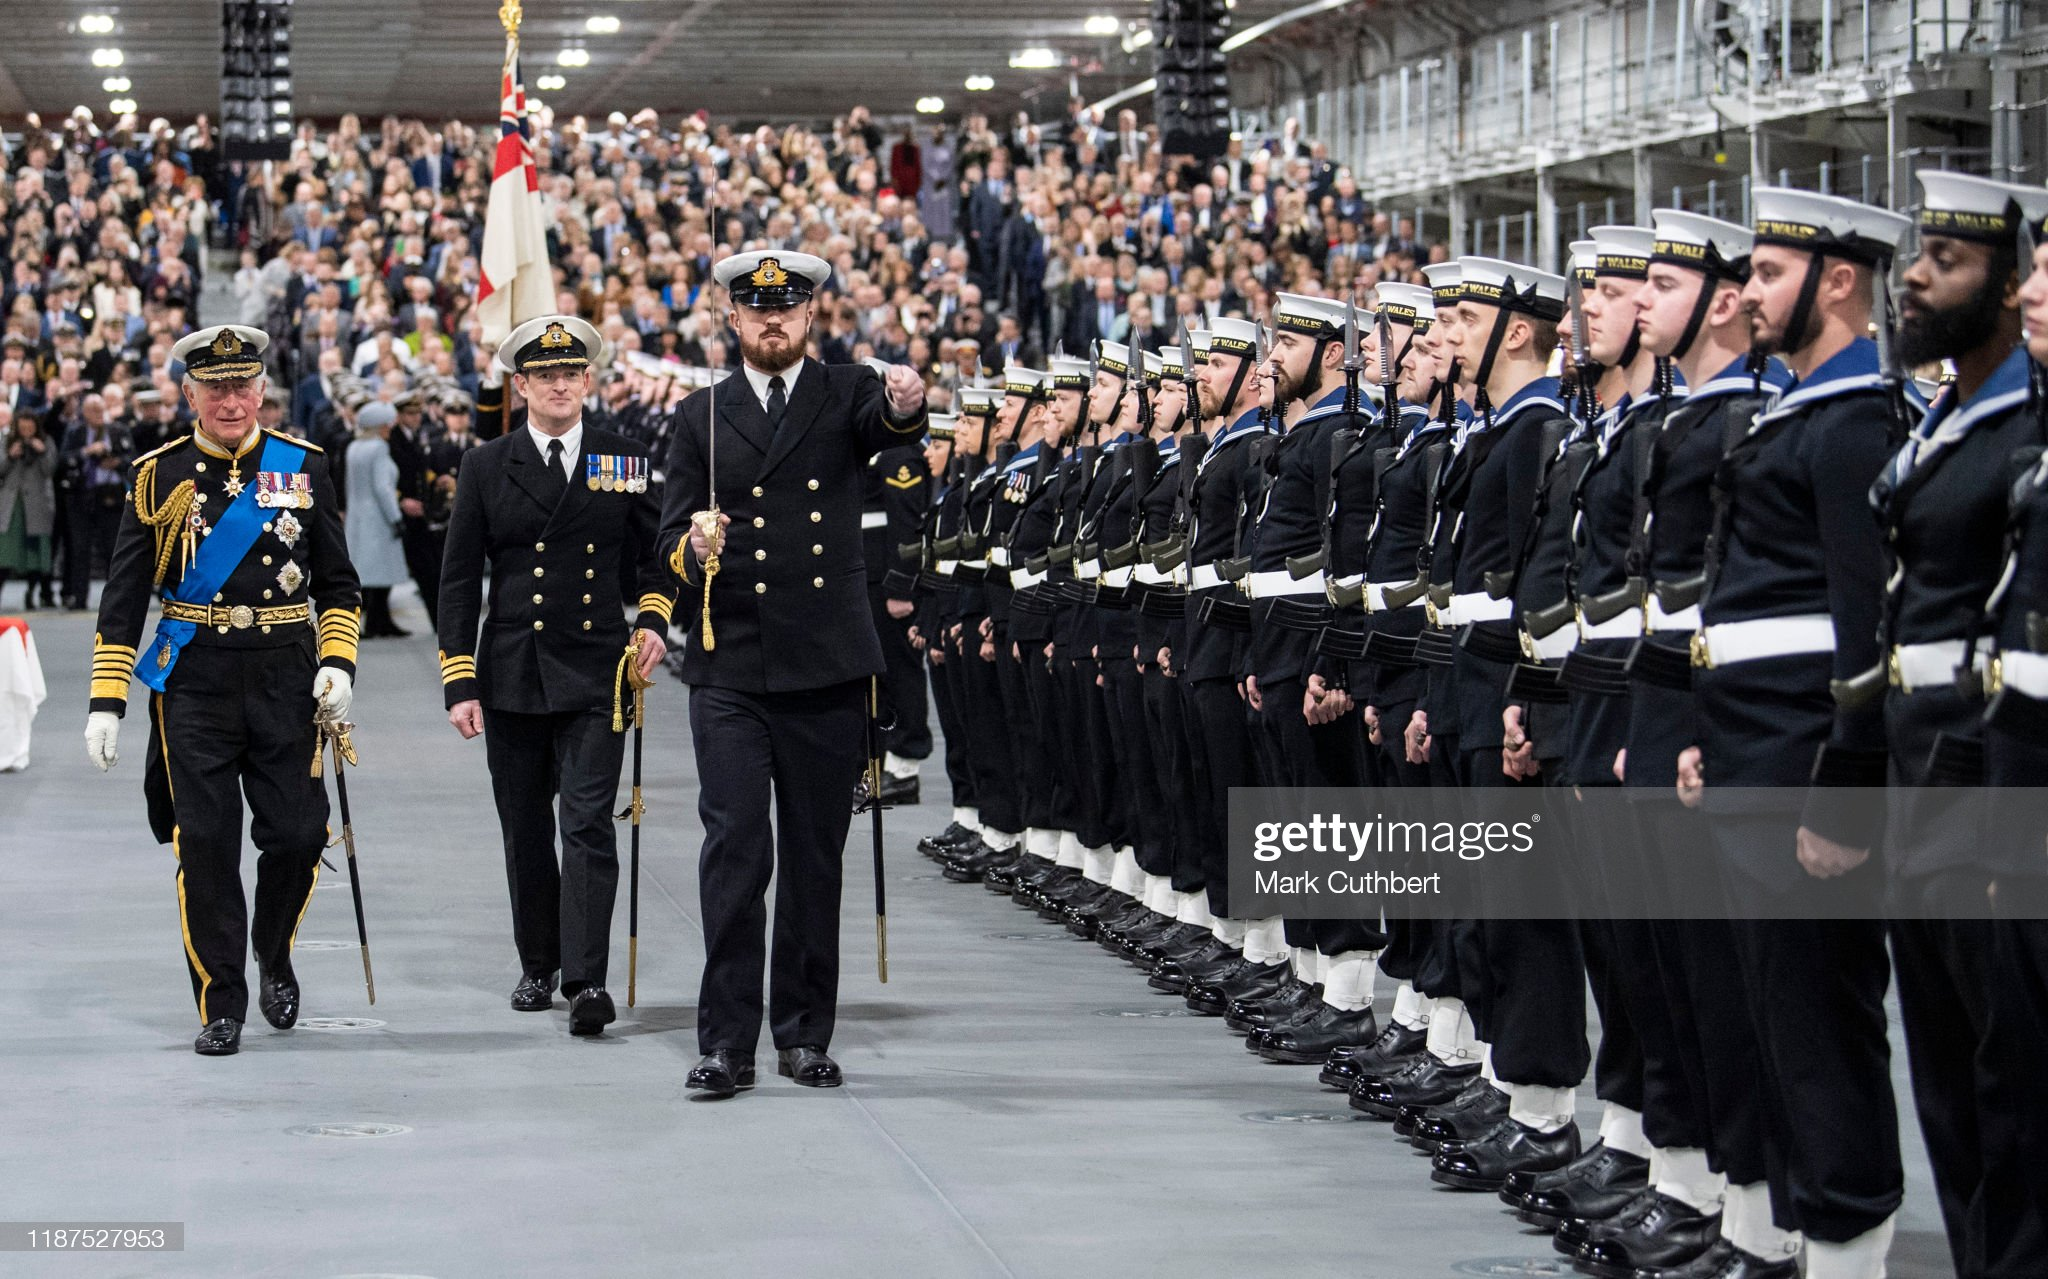 prince-charles-prince-of-wales-attends-the-official-commissioning-of-picture-id1187527953